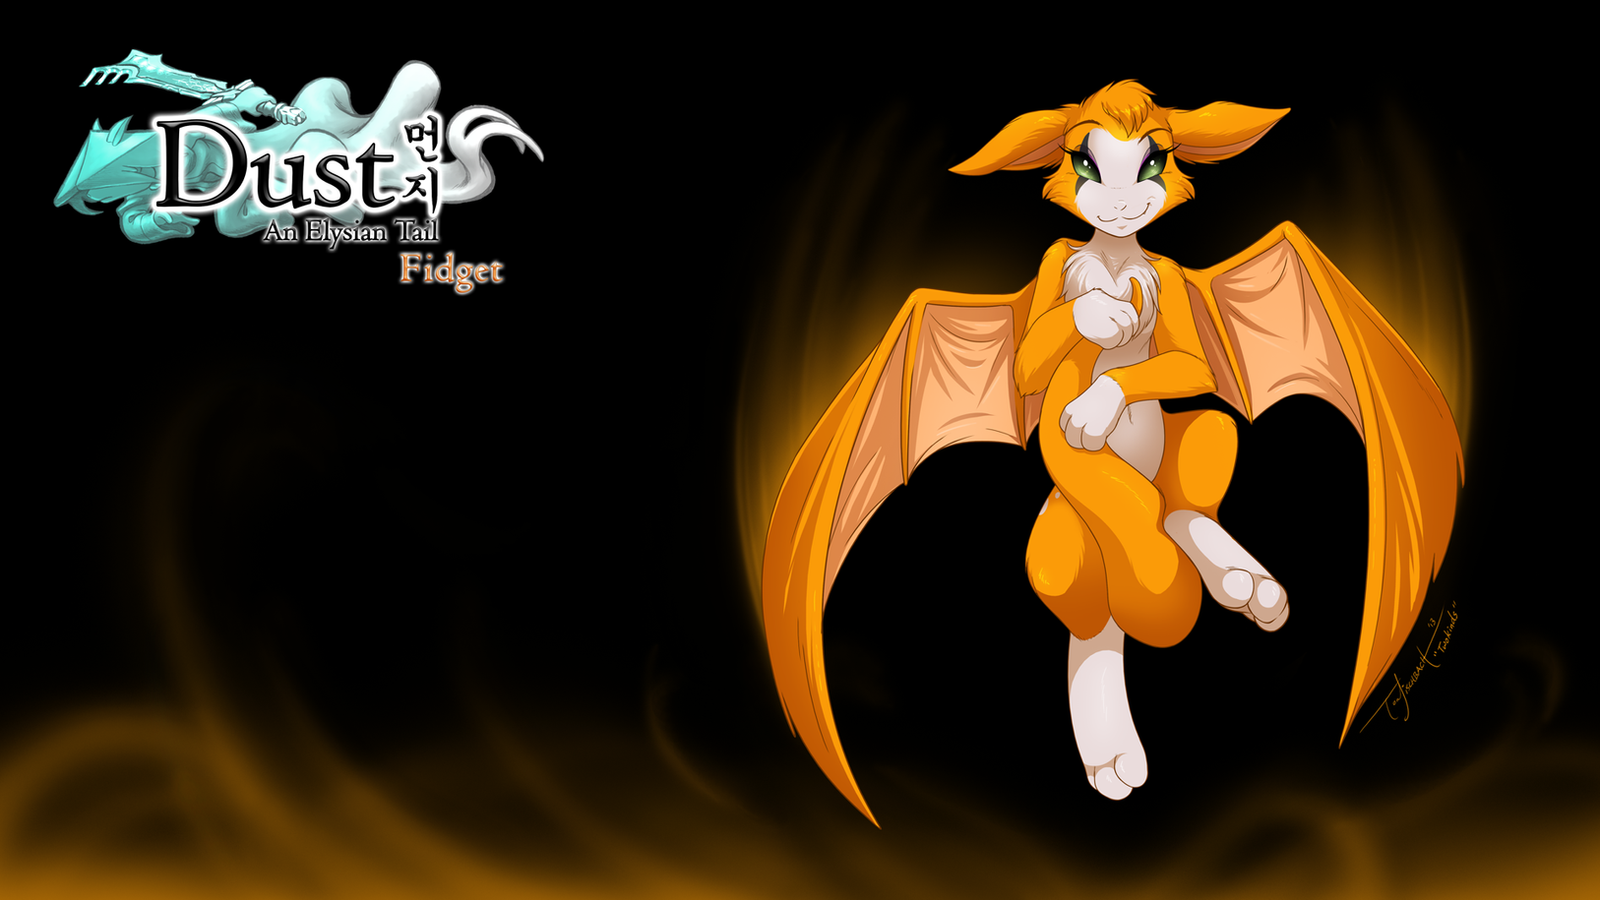 Dust: An Elysian Tail Fanart - Fidget Wallpaper by Twokinds